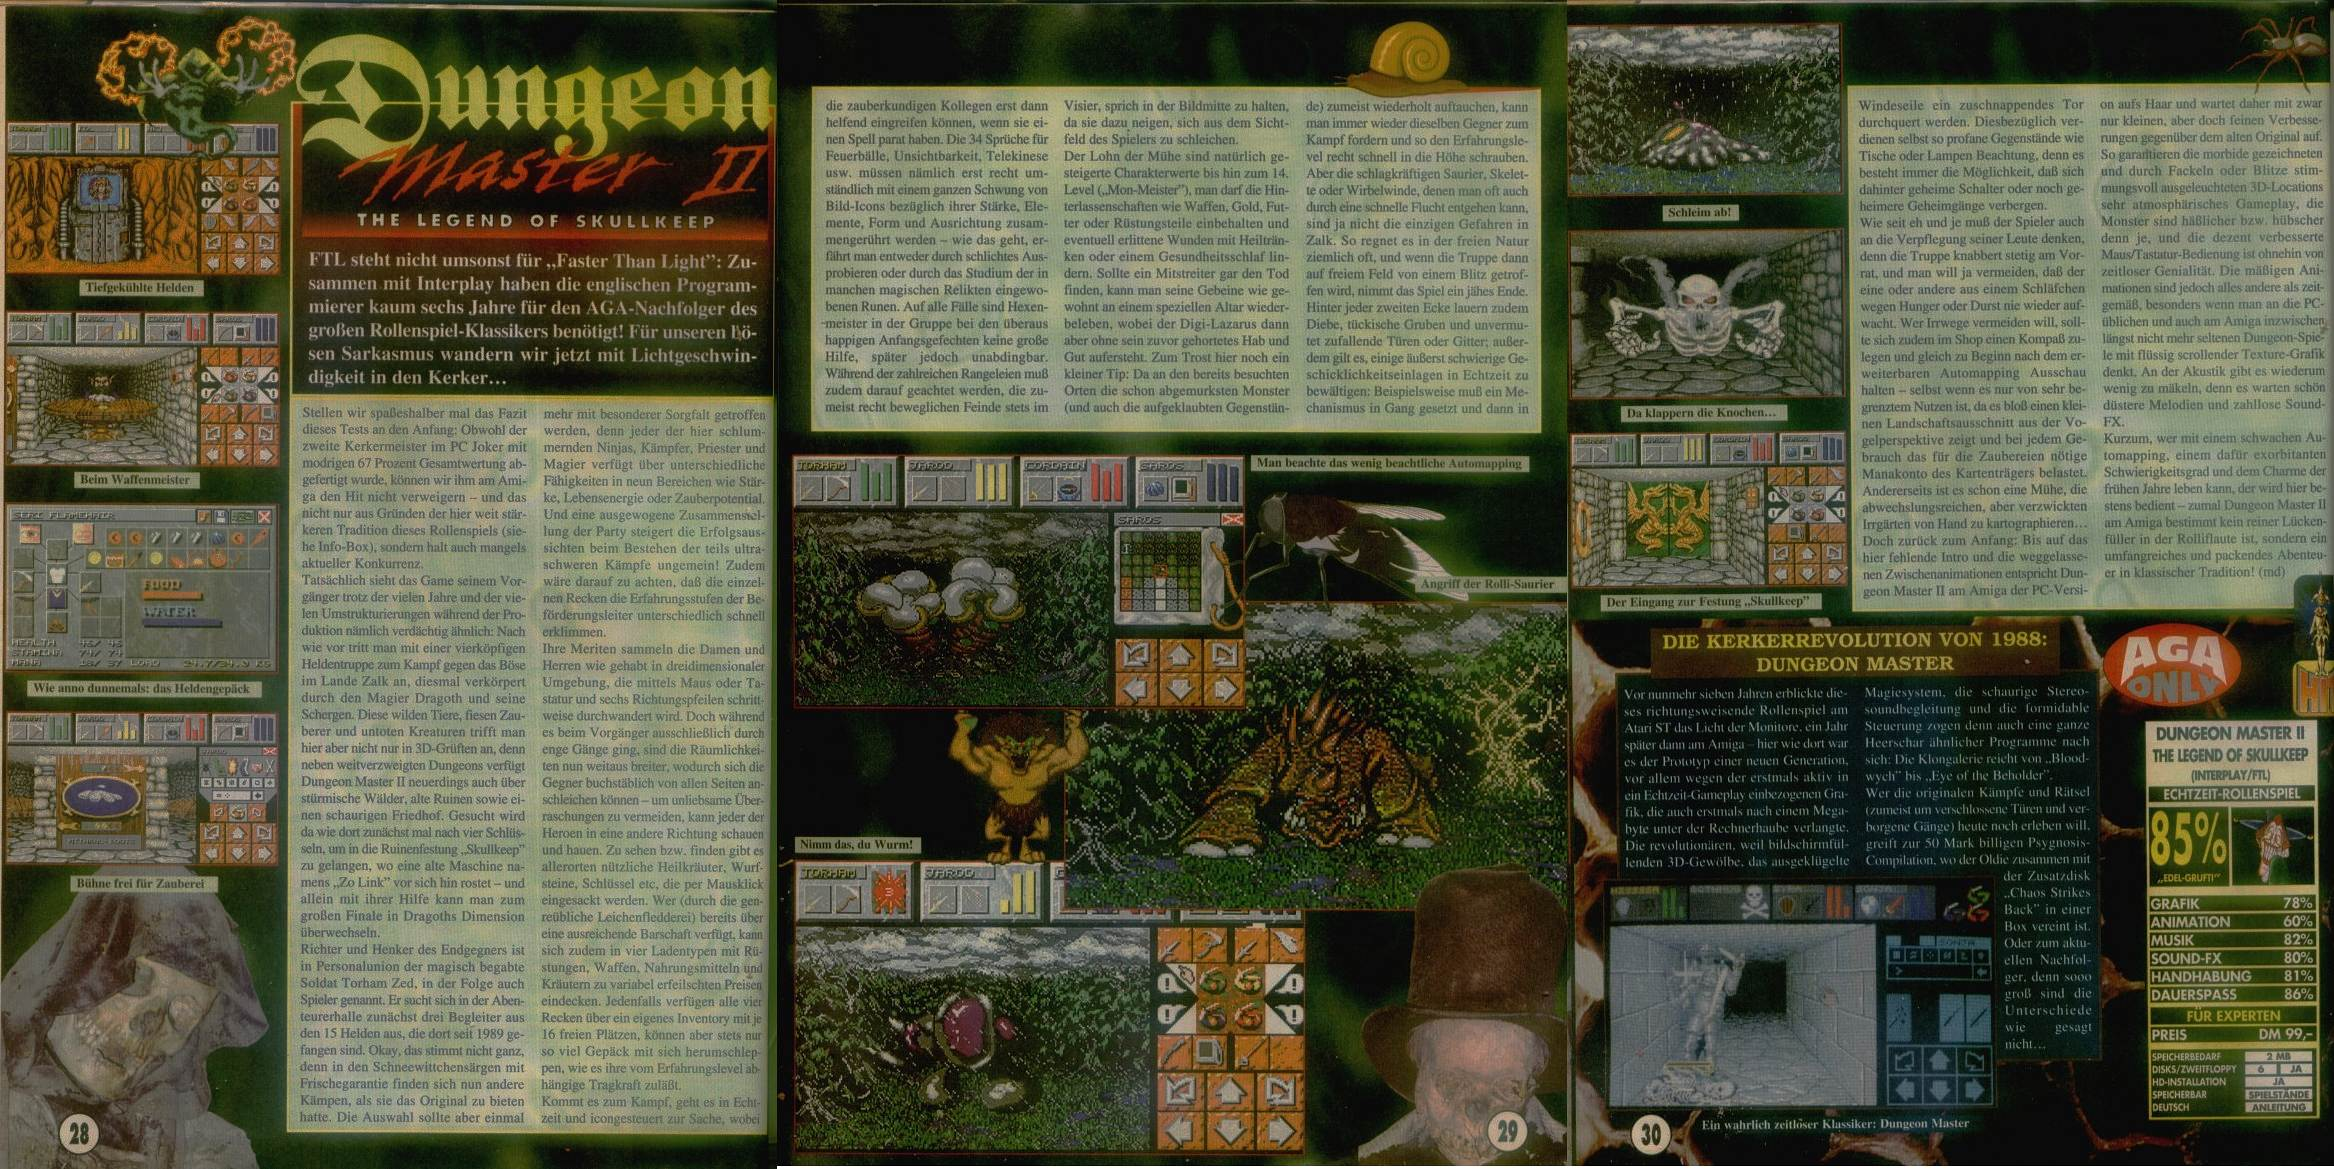 Dungeon Master II for Amiga Review published in German magazine 'Amiga Joker', October 1995, Pages 28-30